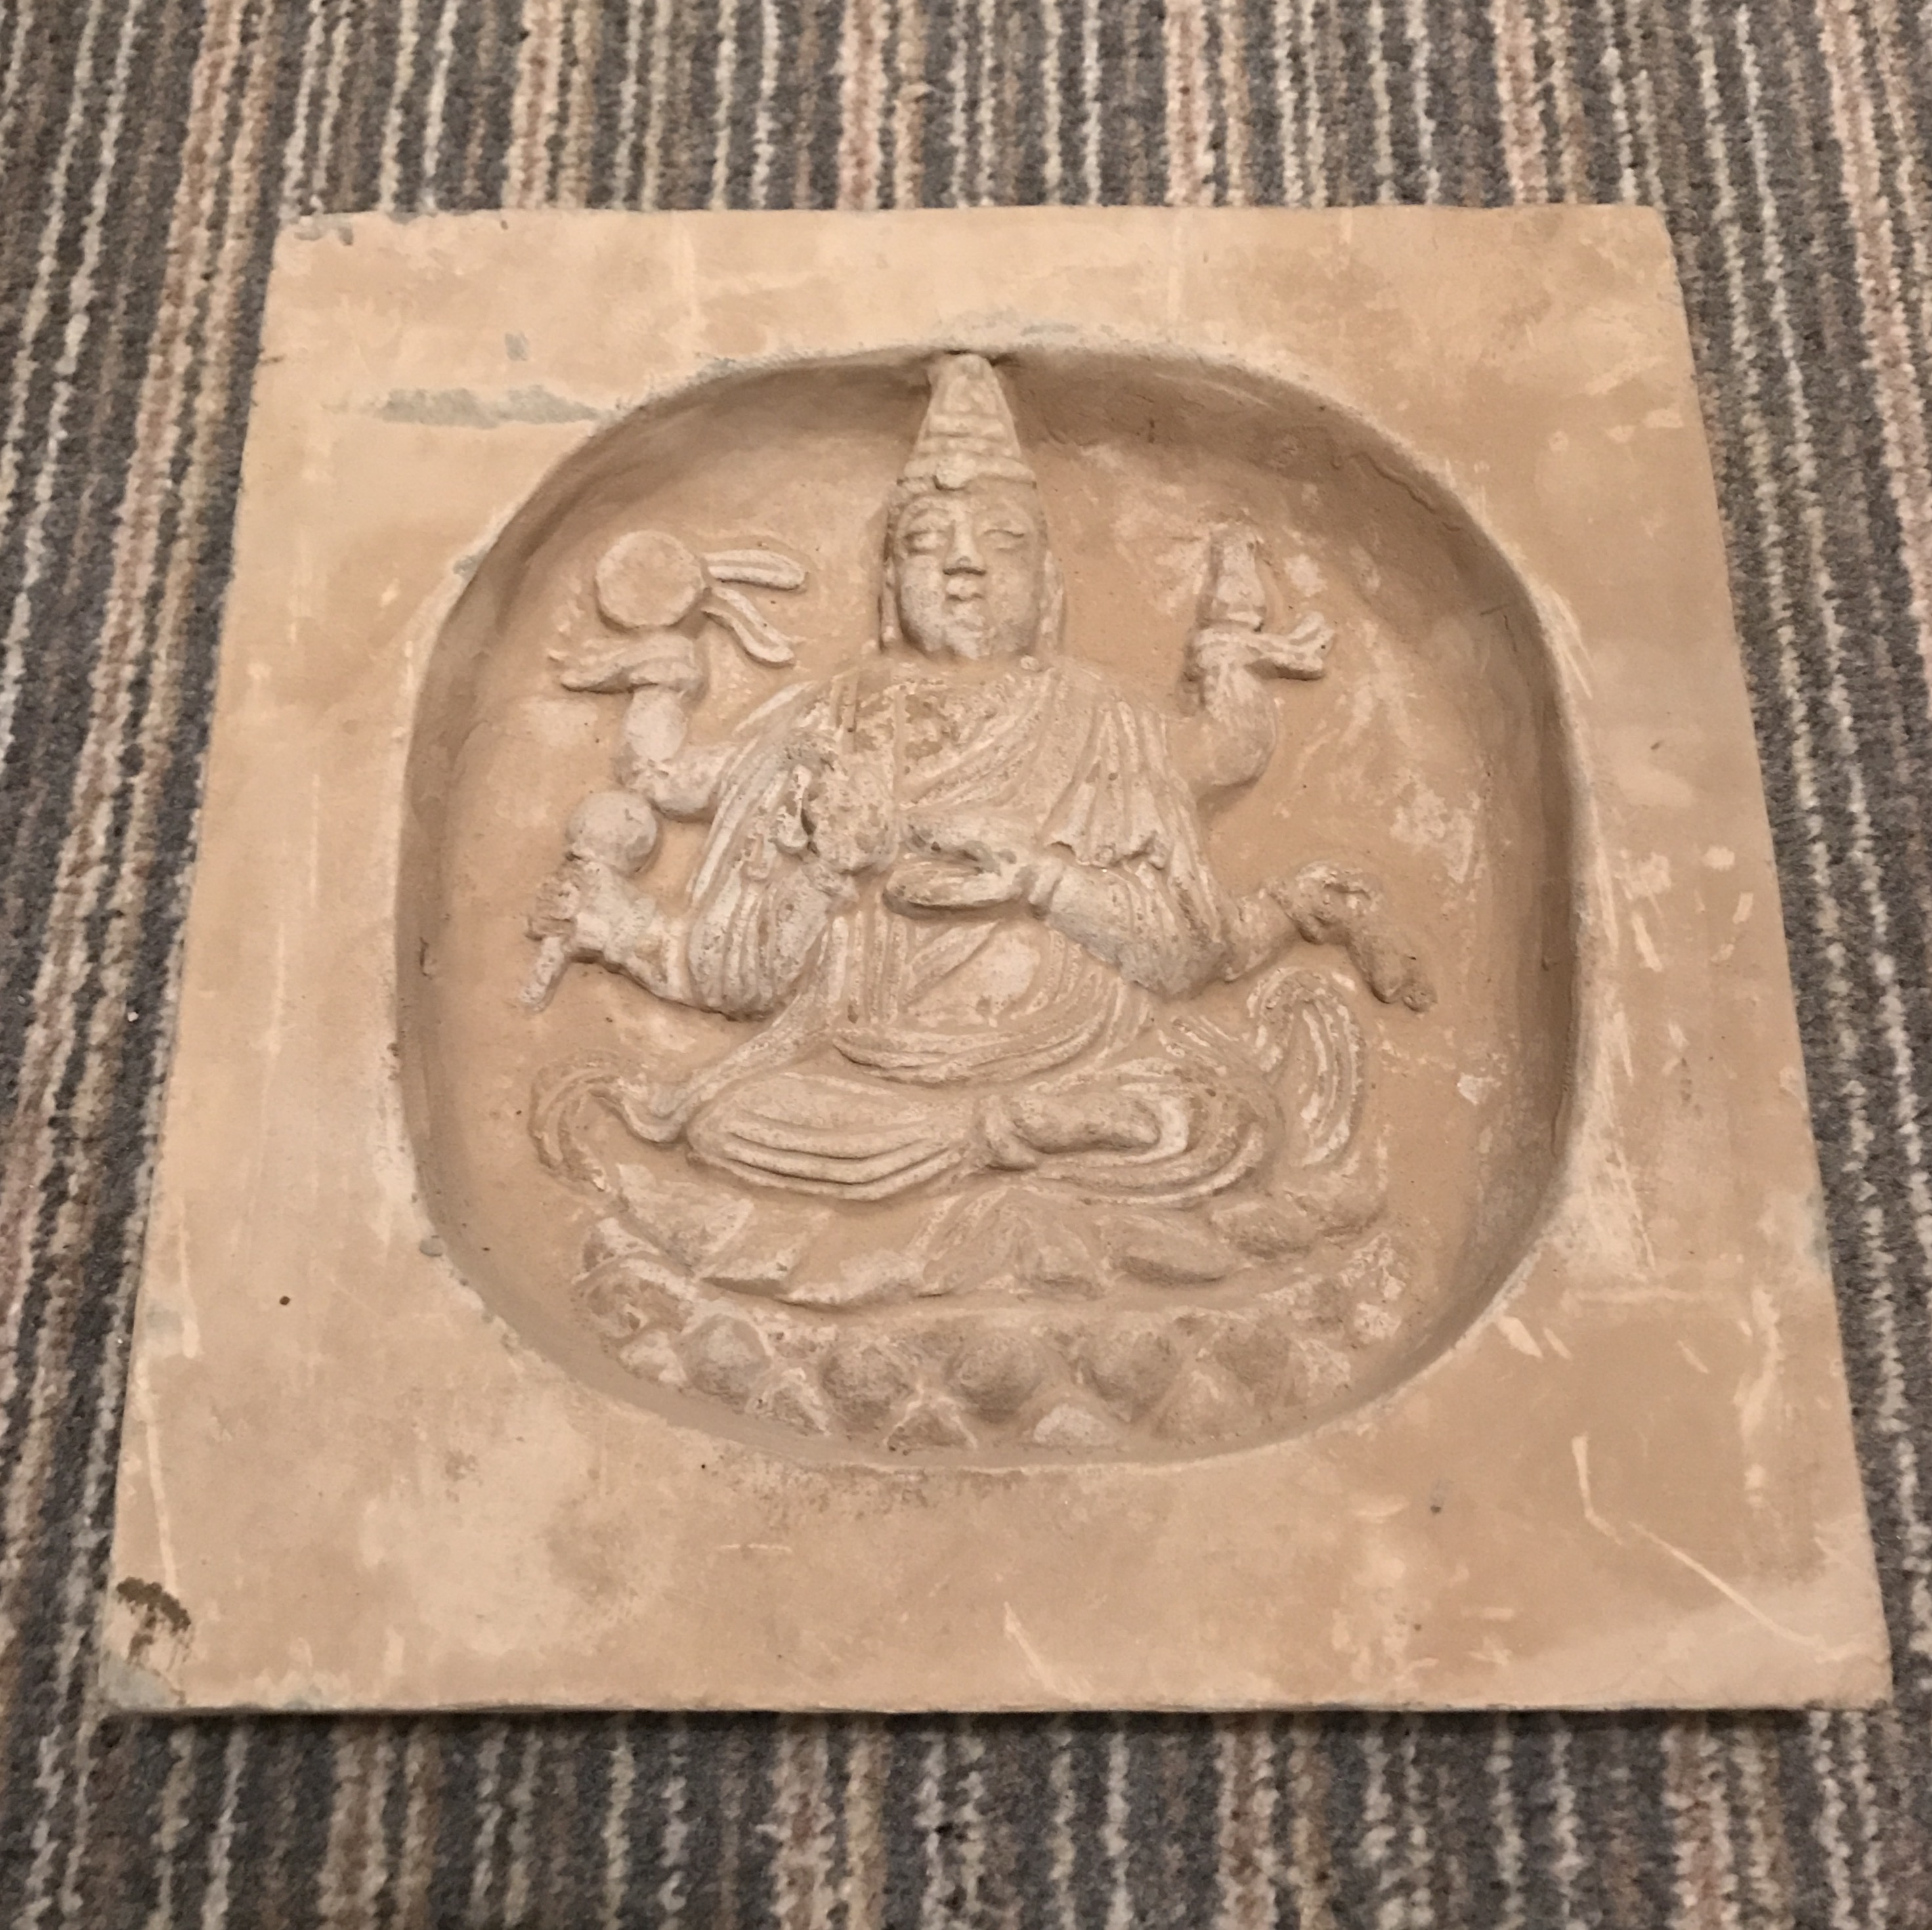 Ancient China Song Dynasty Stone Carved Tile With Buddha